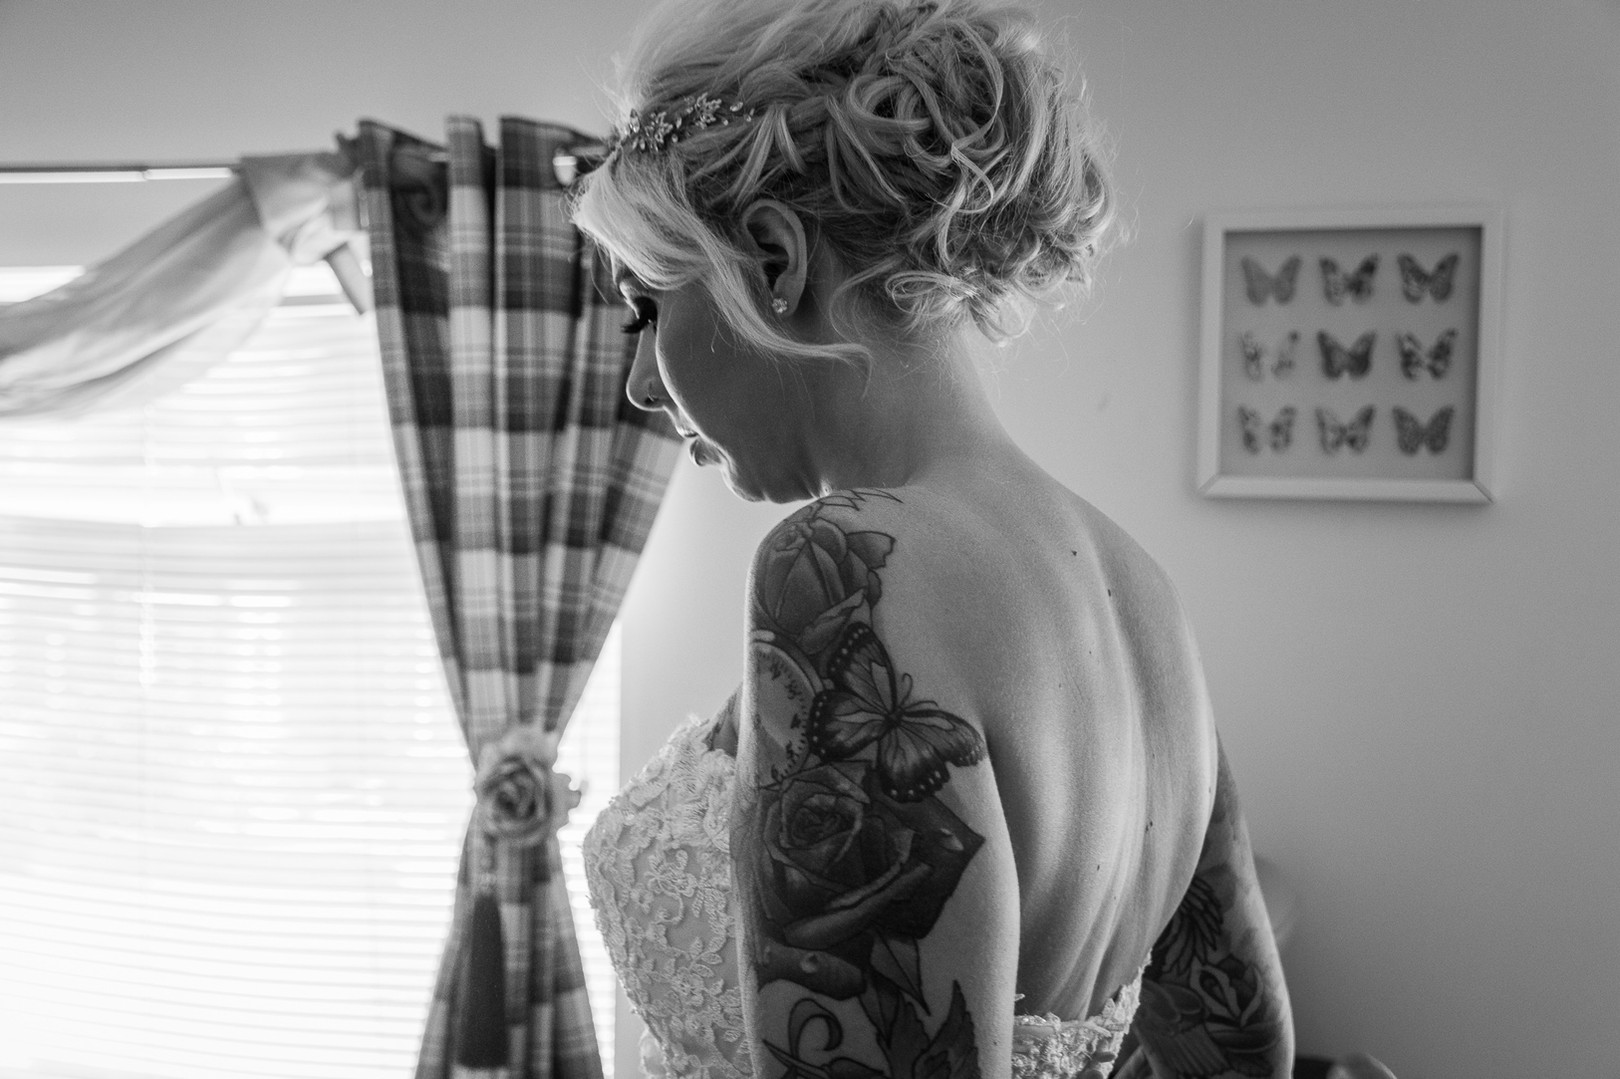 A bride takes a moment to herself in the midst of preparations before her wedding.